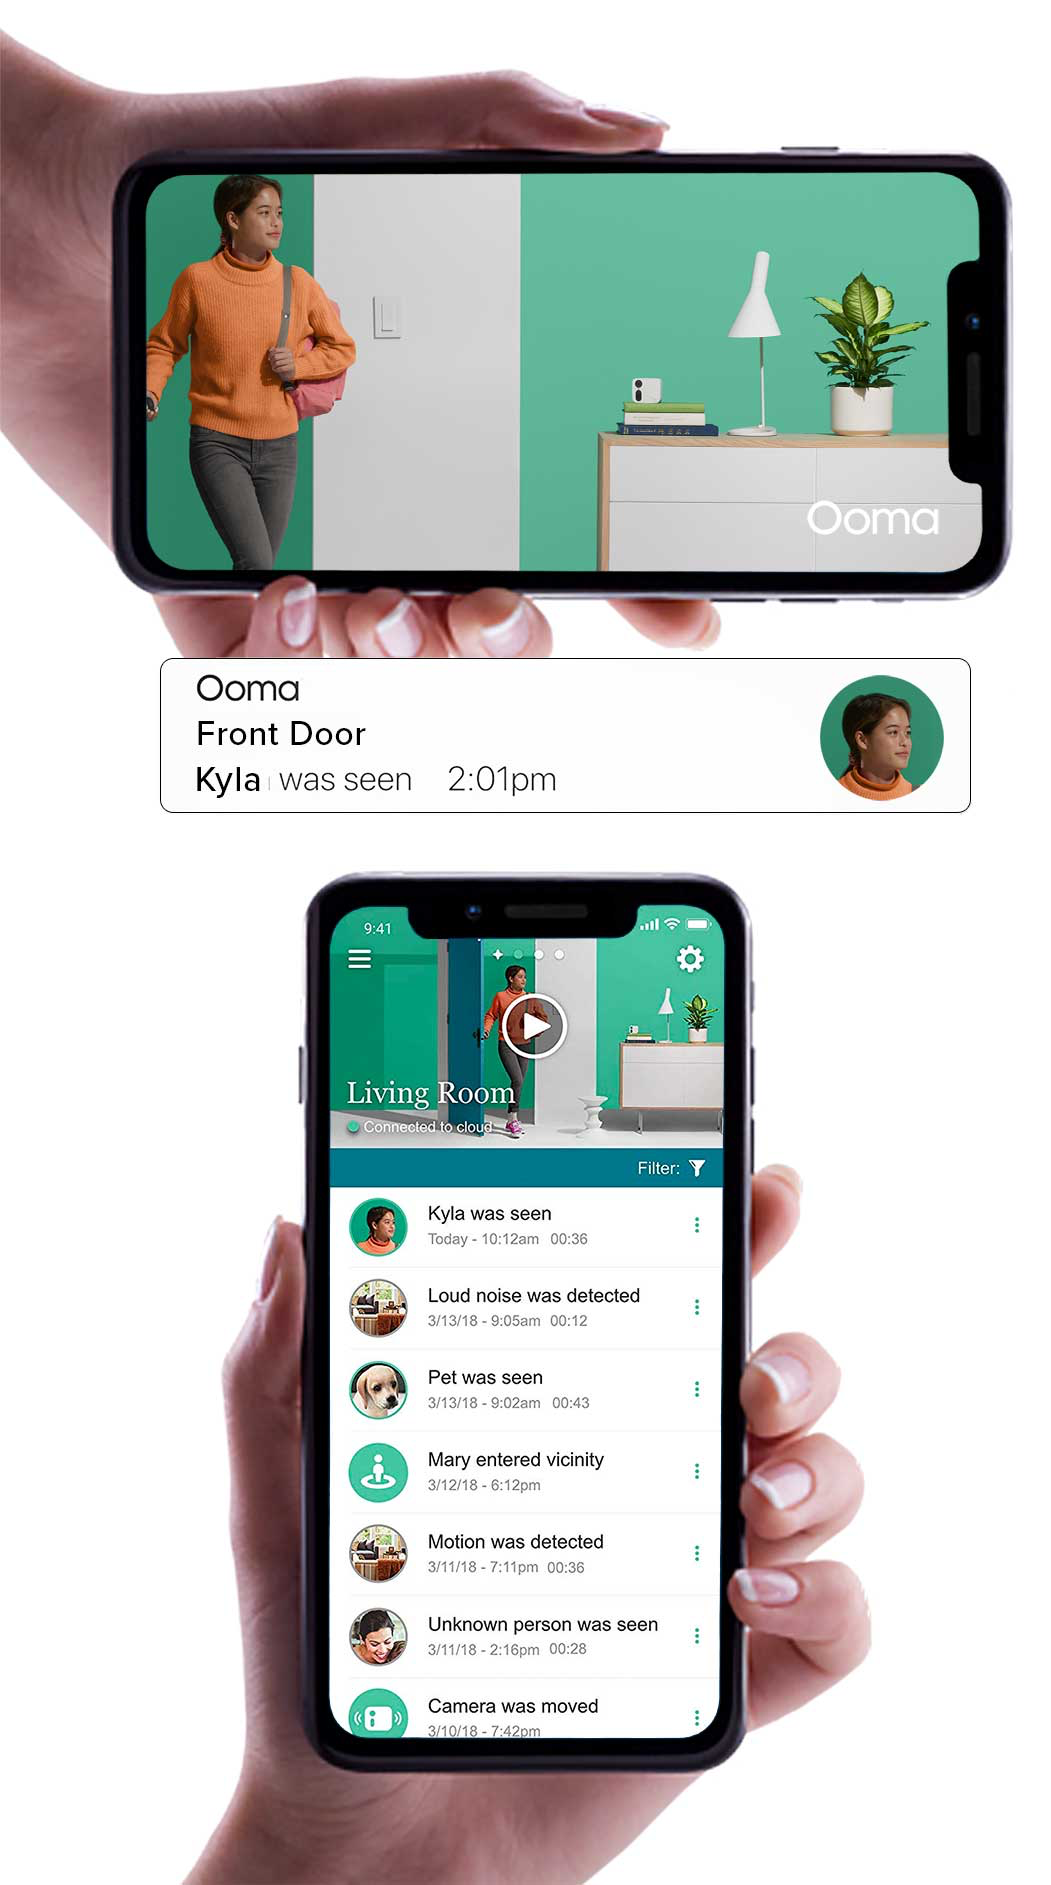 Ooma mobile application image